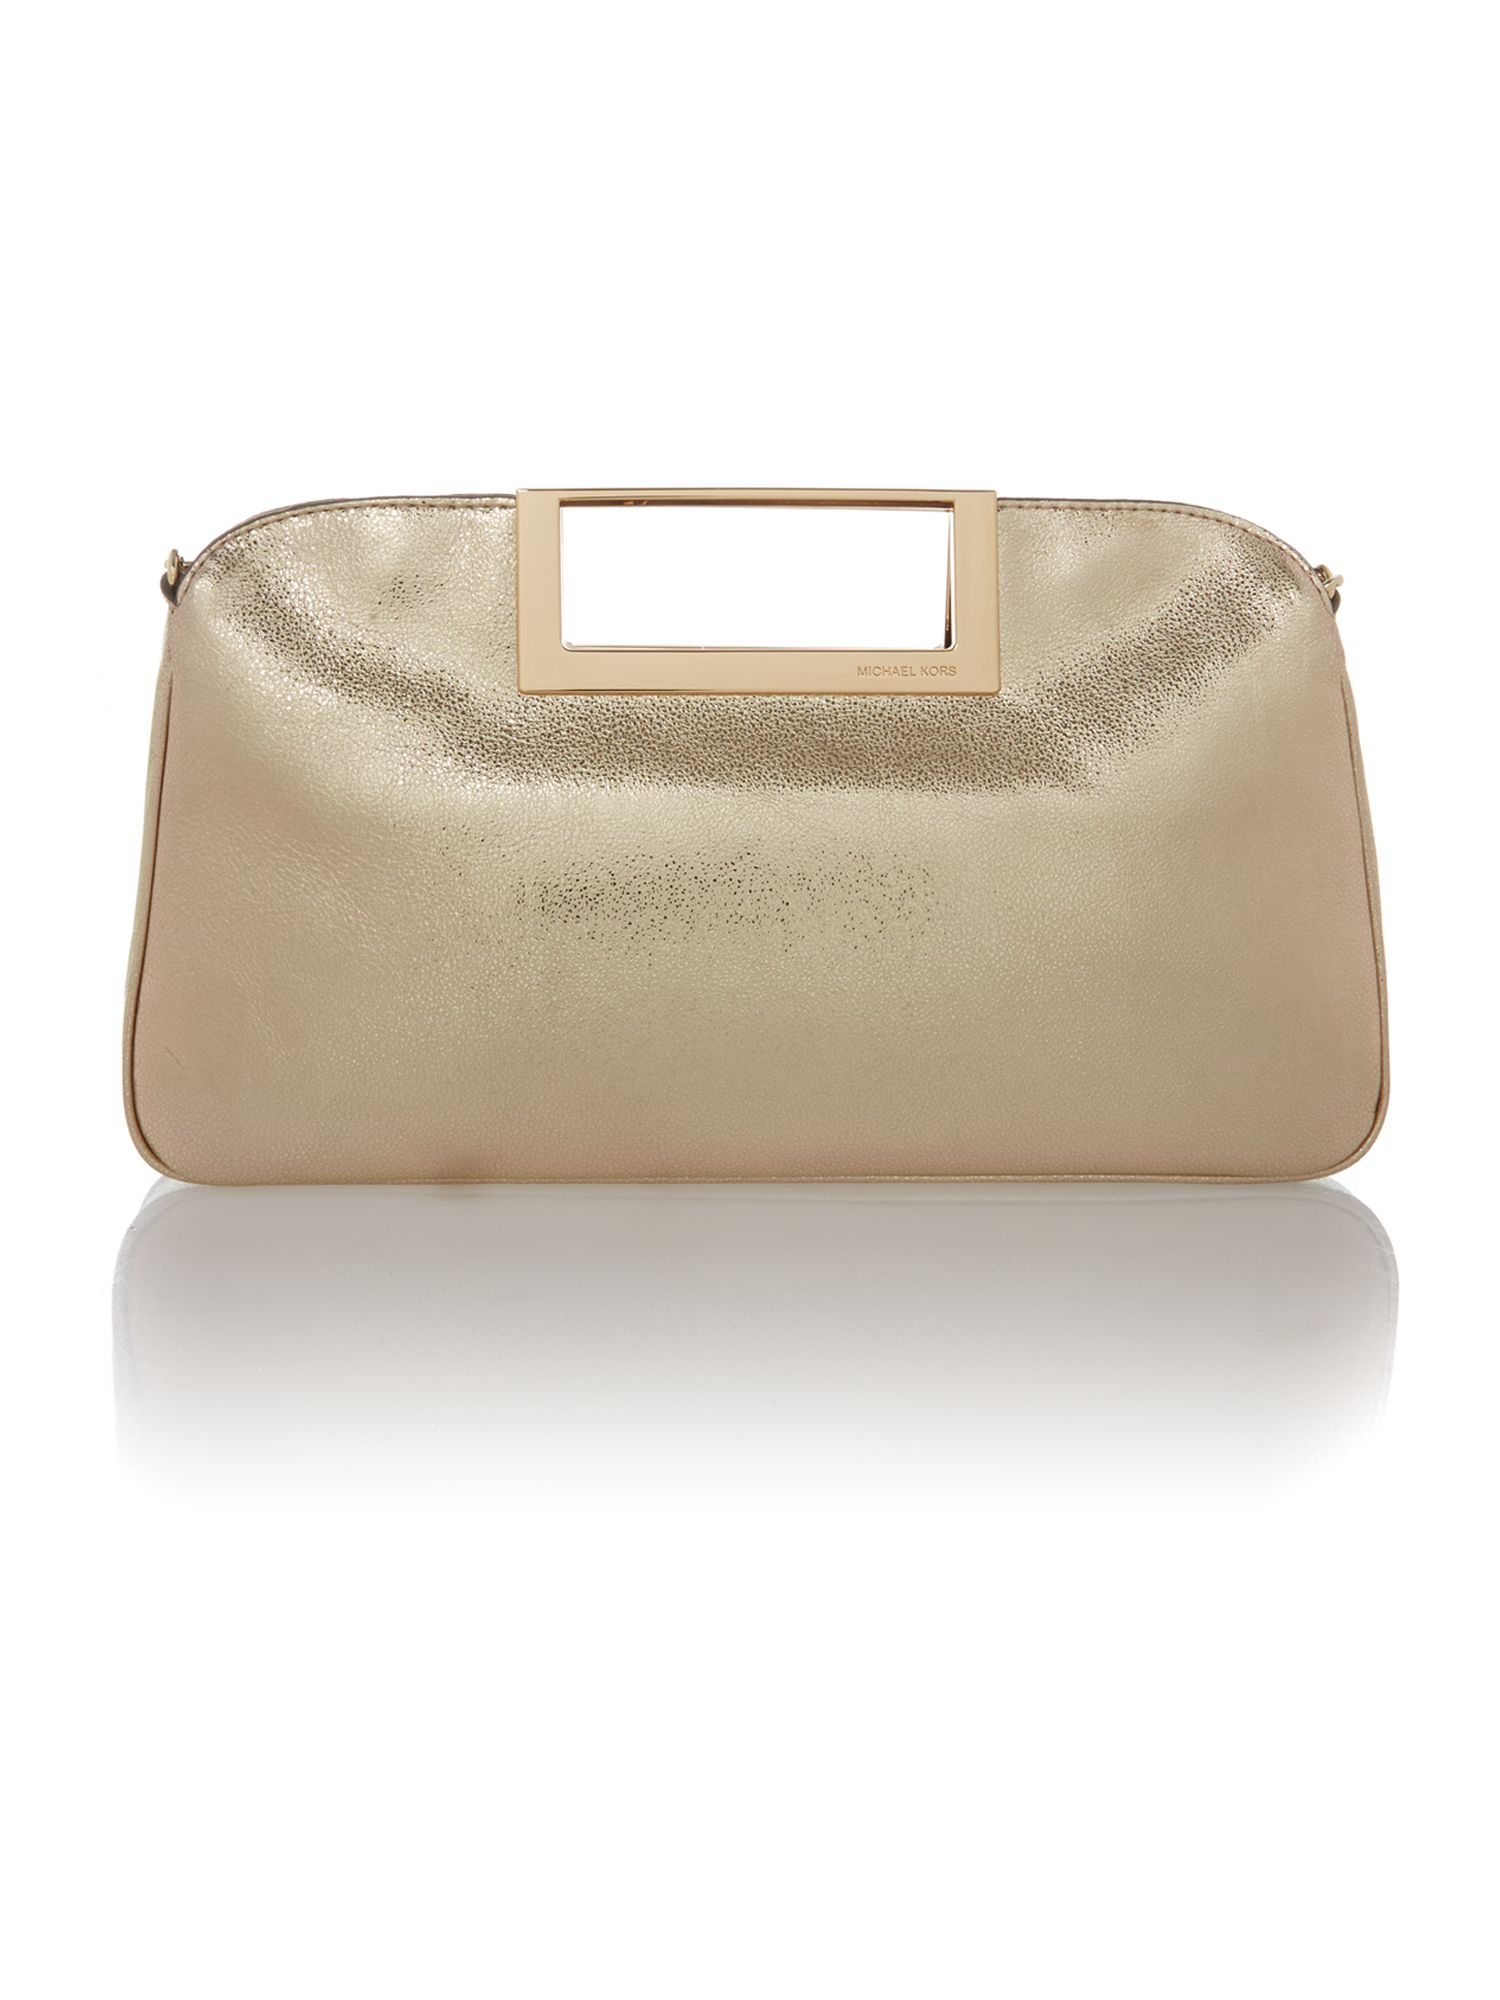 Berkley gold clutch bag